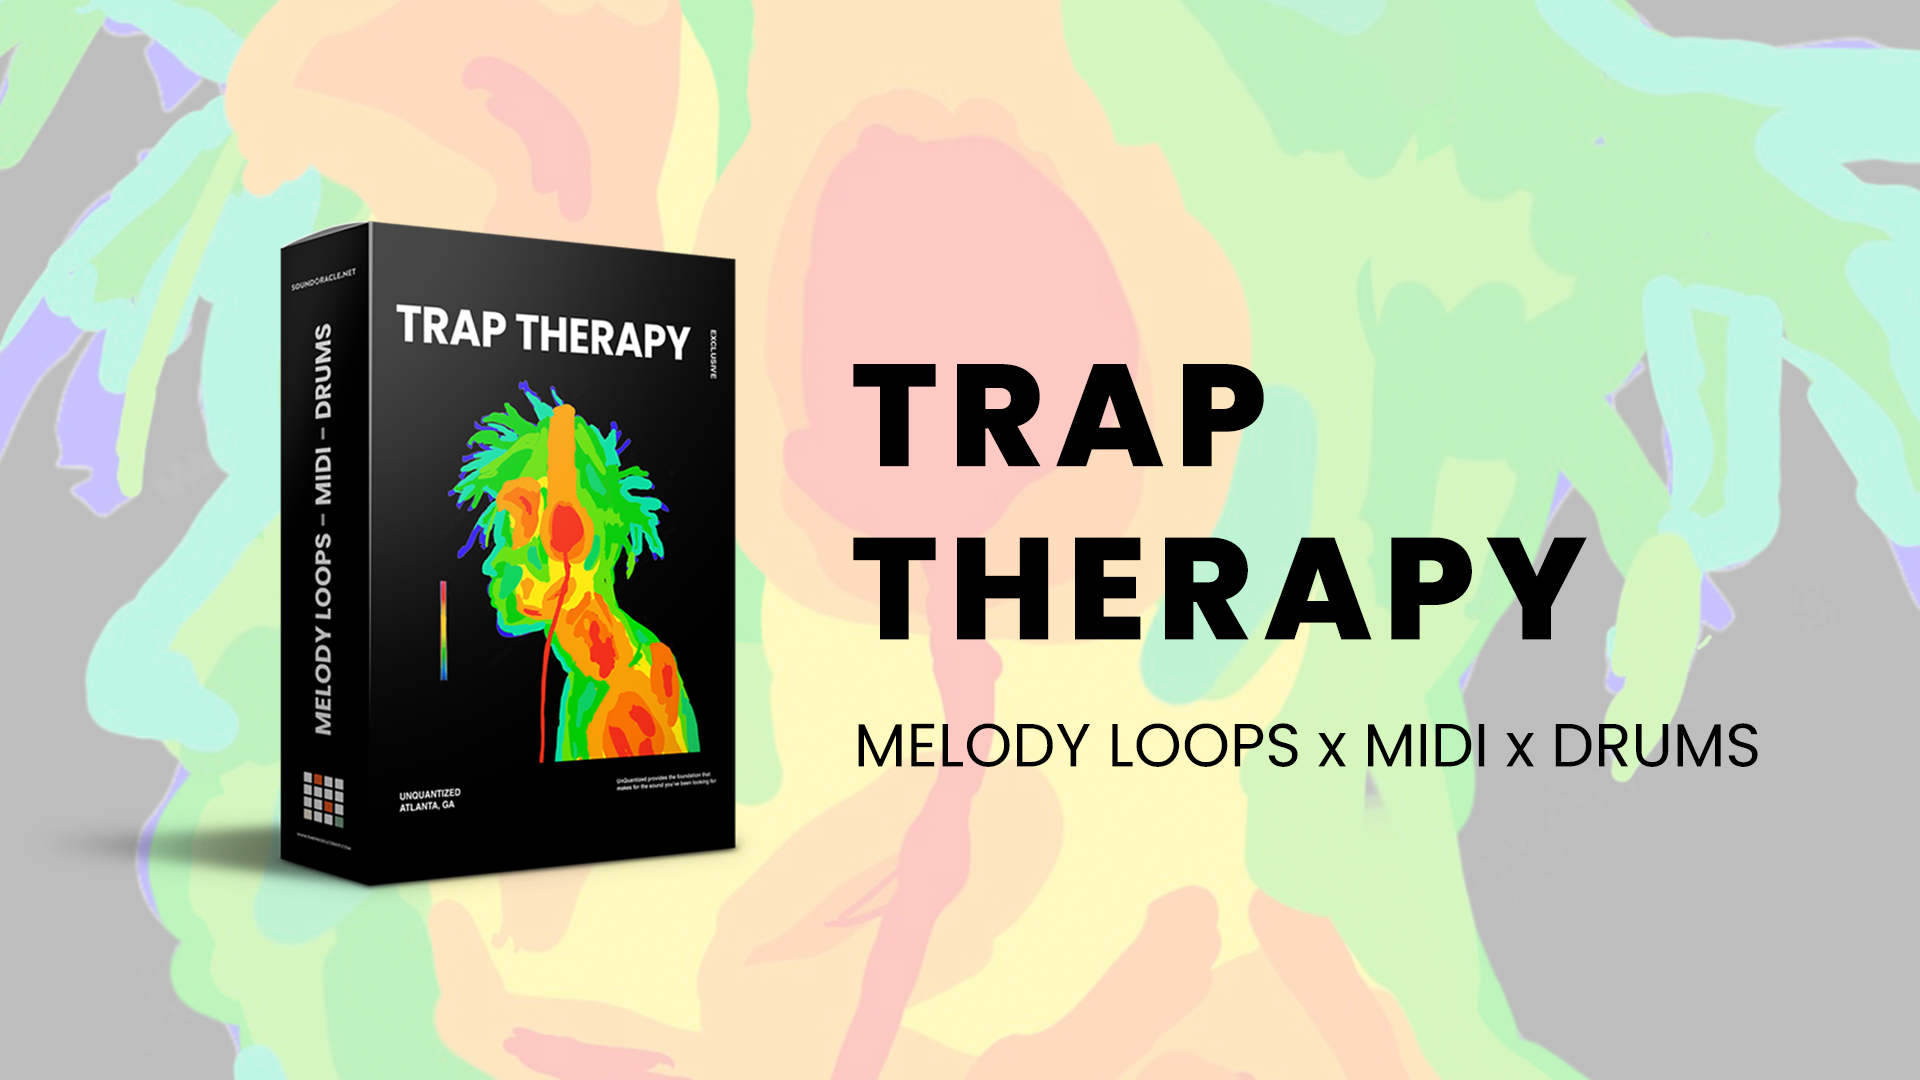 Trap Therapy - Melody Loops x Midi x Drums